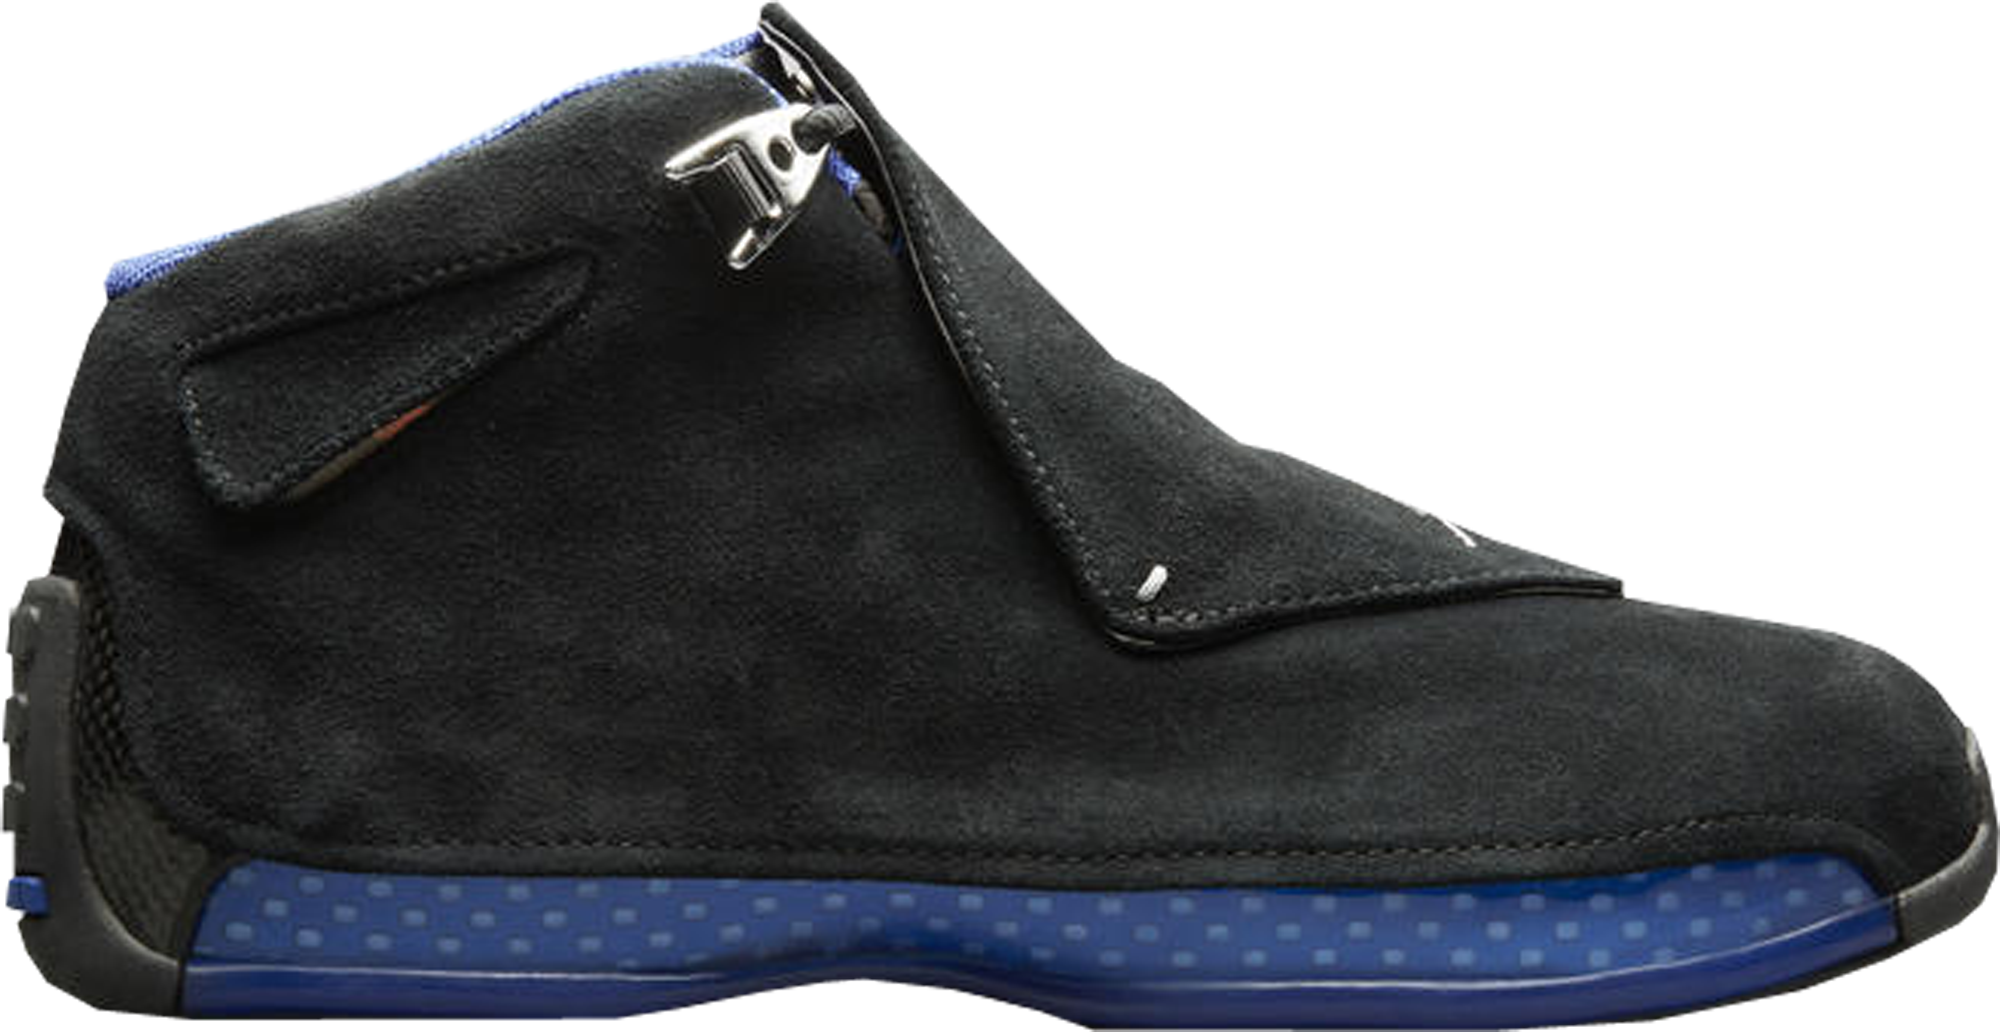 5e52610a01b865 Check out the Jordan 18 Retro Black Sport Royal available on StockX